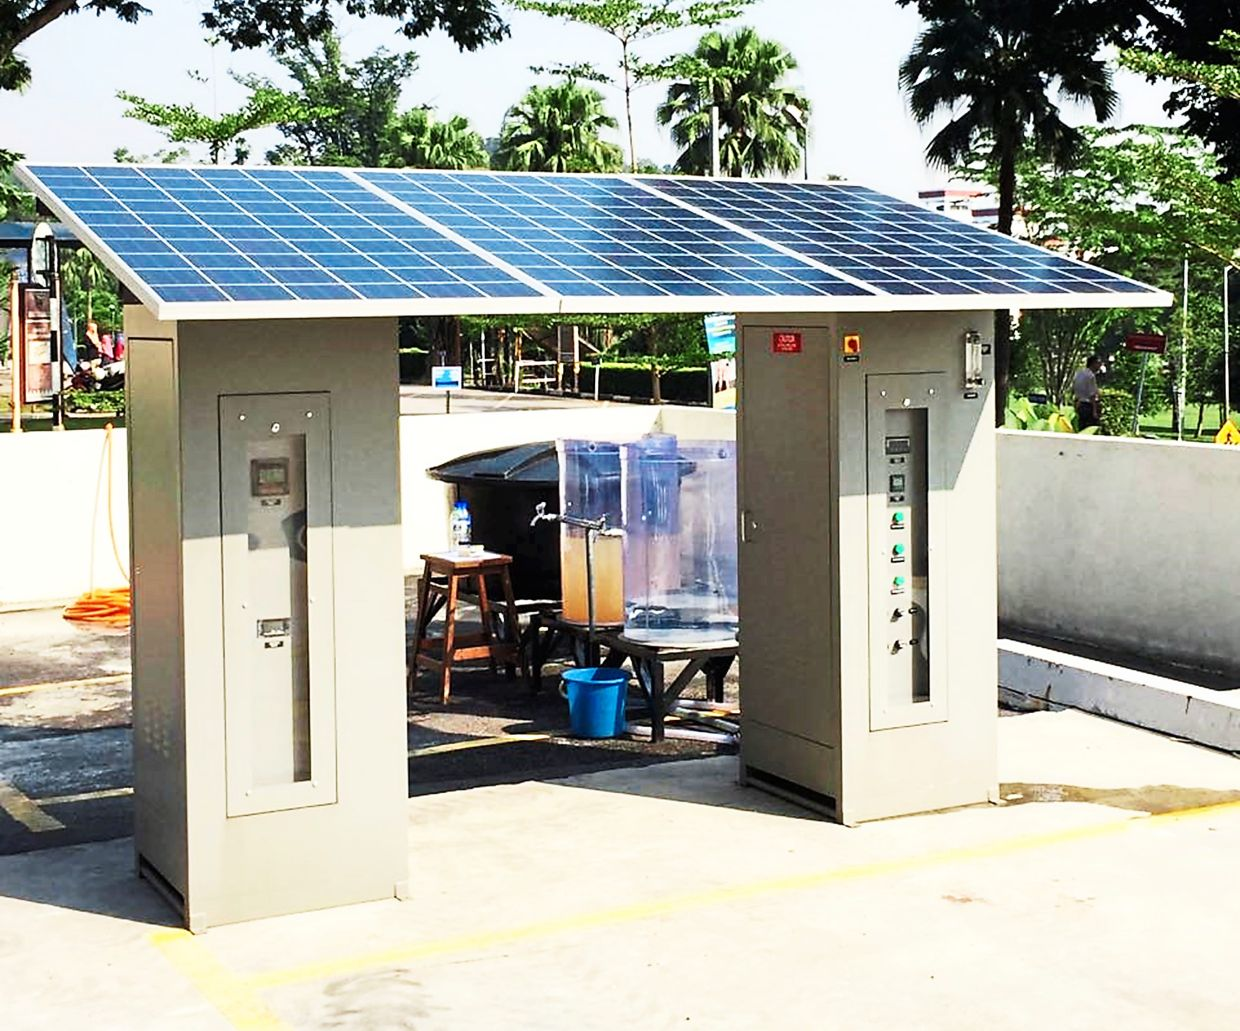 The award-winning solar-powered ultrafiltration system that produces clean water for flood victims and communities in remote areas. Photo: Mohamed Kheireddine Aroua